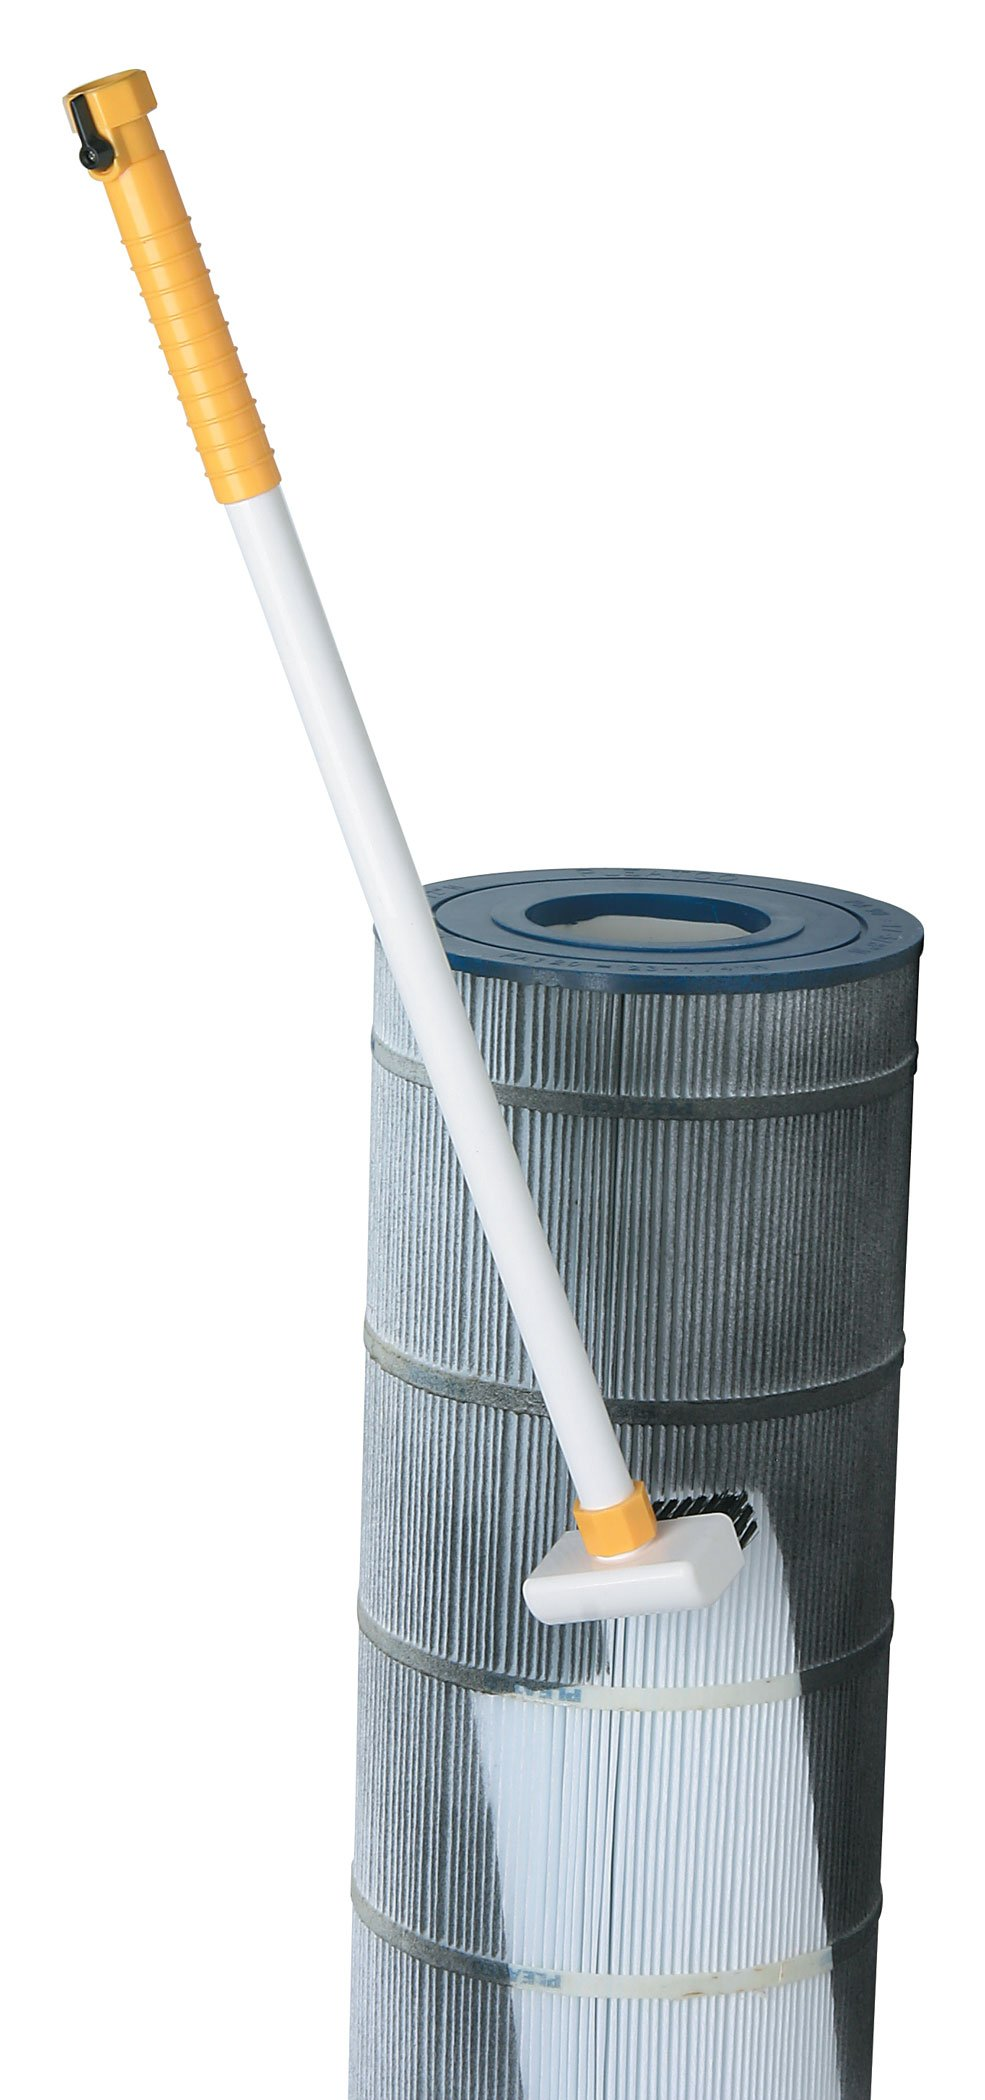 Solutions Group Sa, Inc. Pool Filter Cartridge Cleaning Wand Garden Hose Attachment